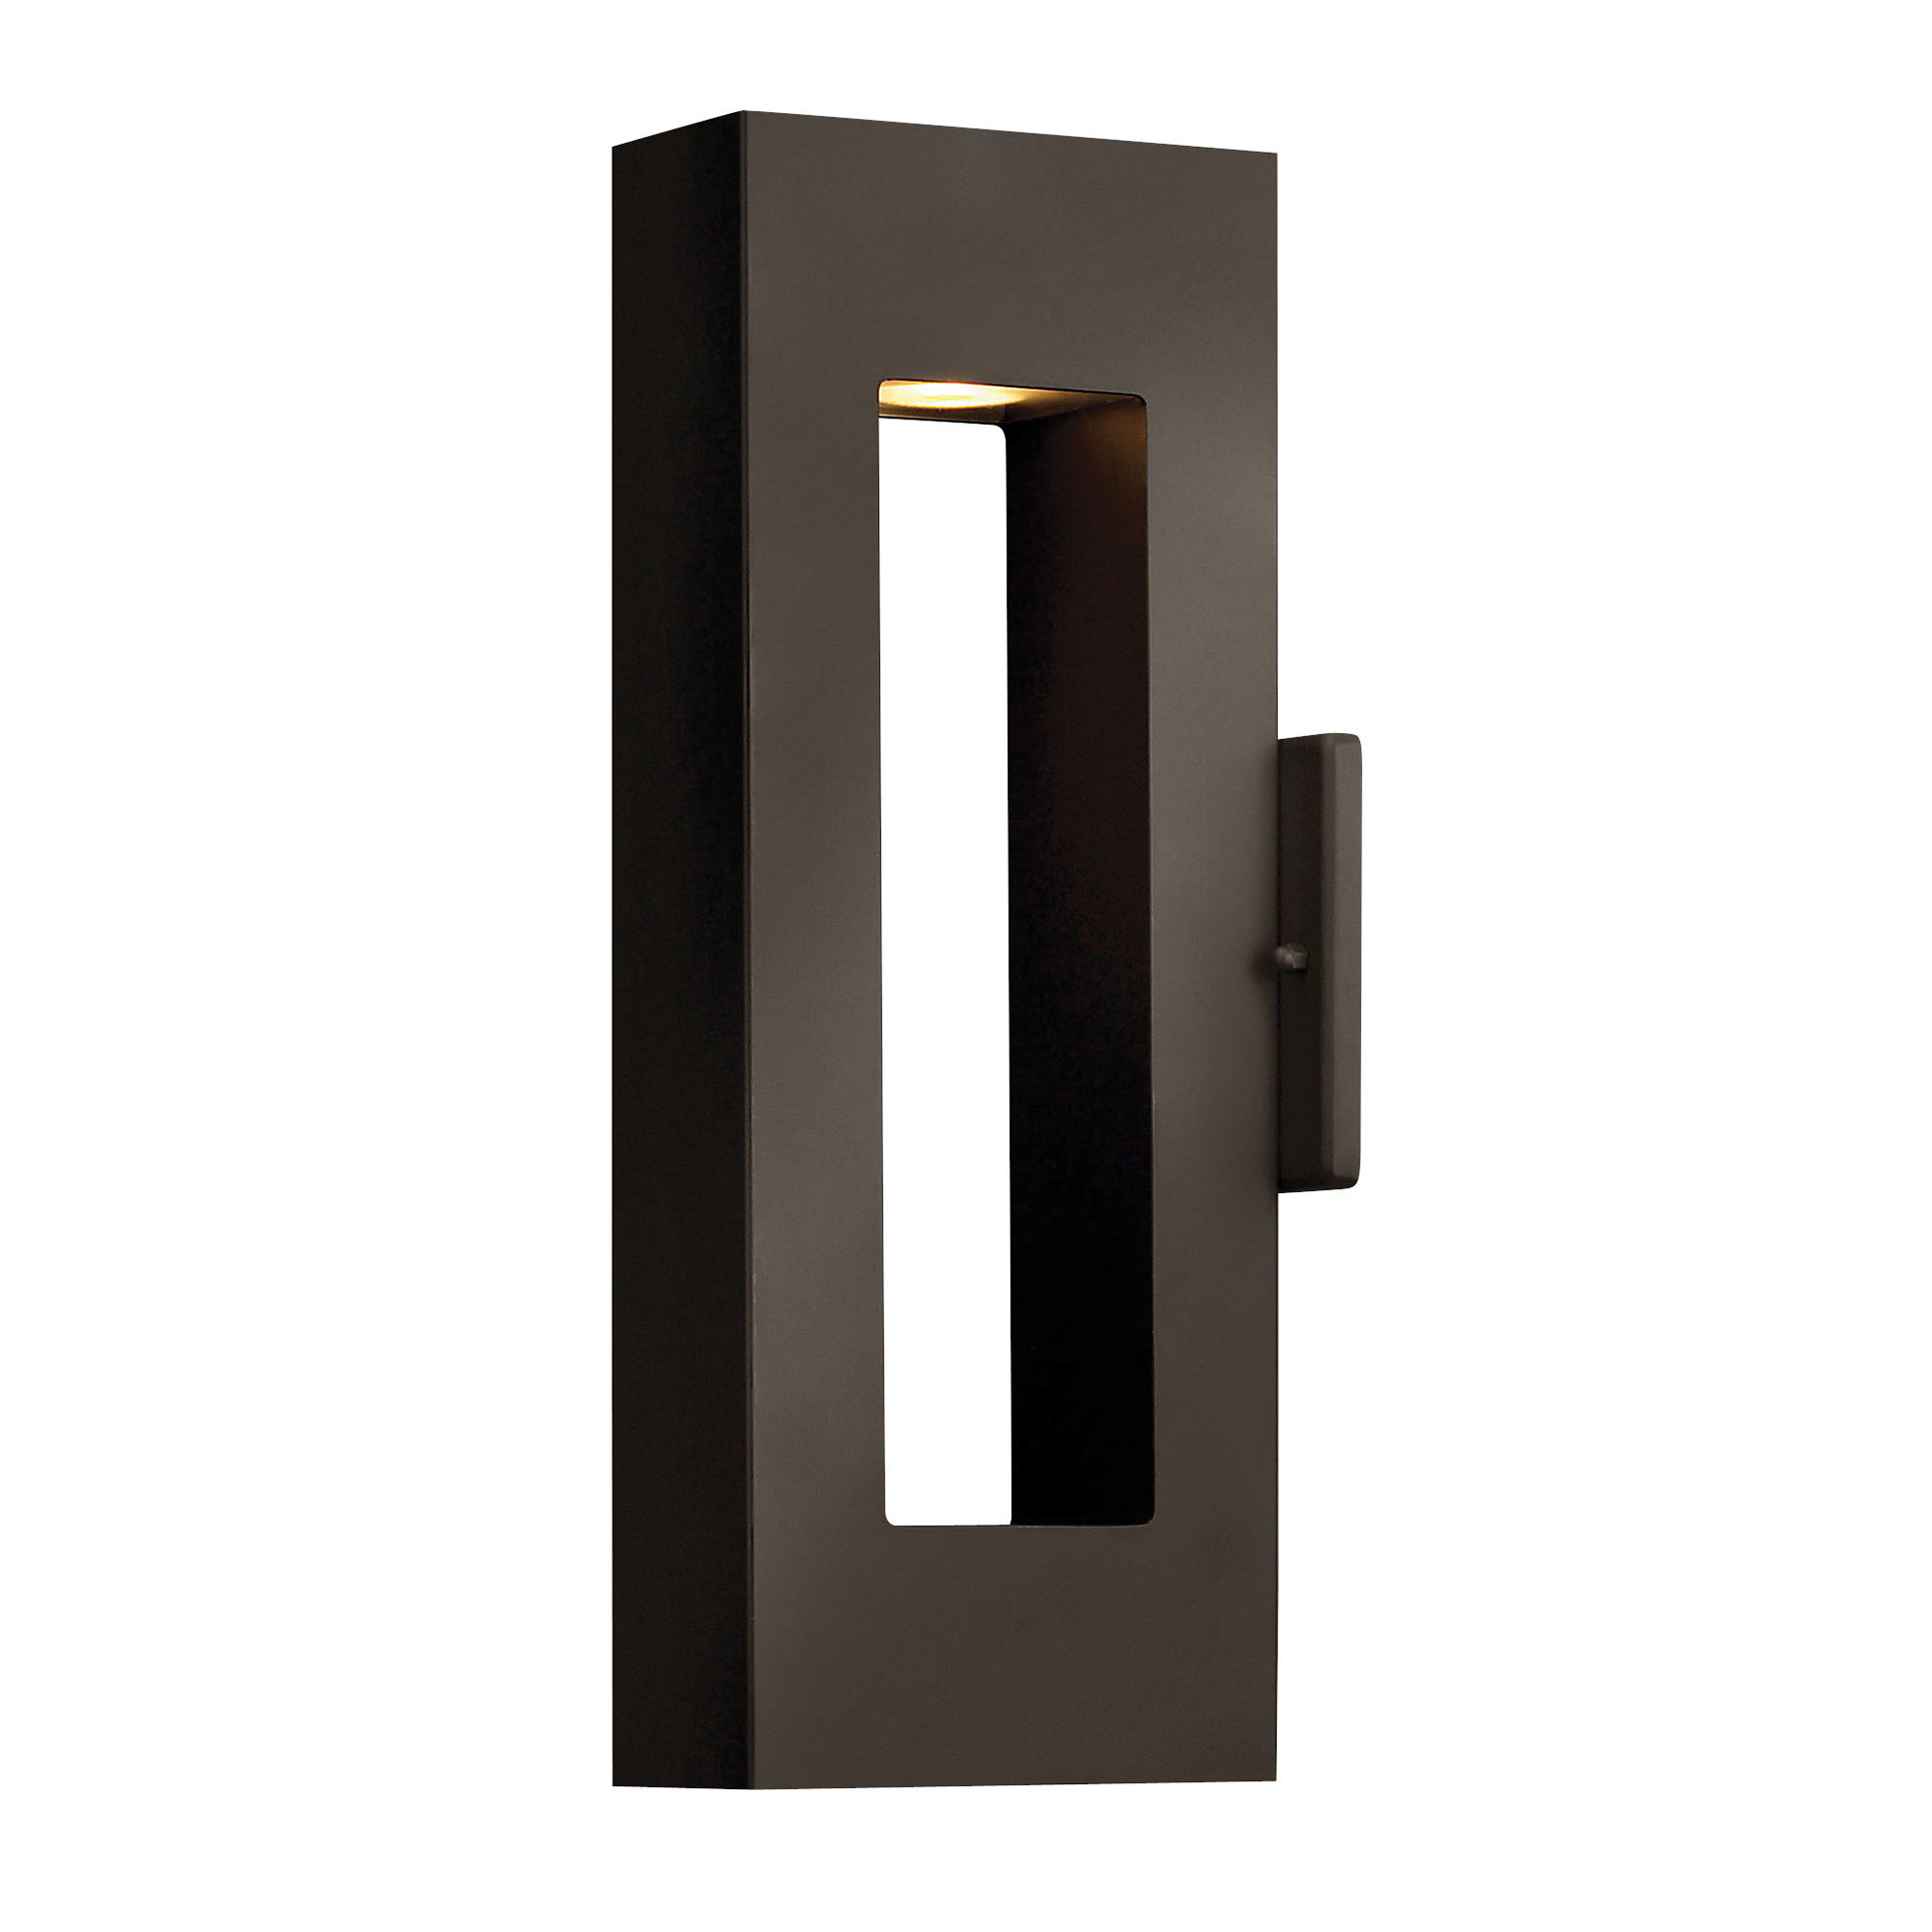 Atlantis led outdoor wall light by hinkley lighting 1640bz led